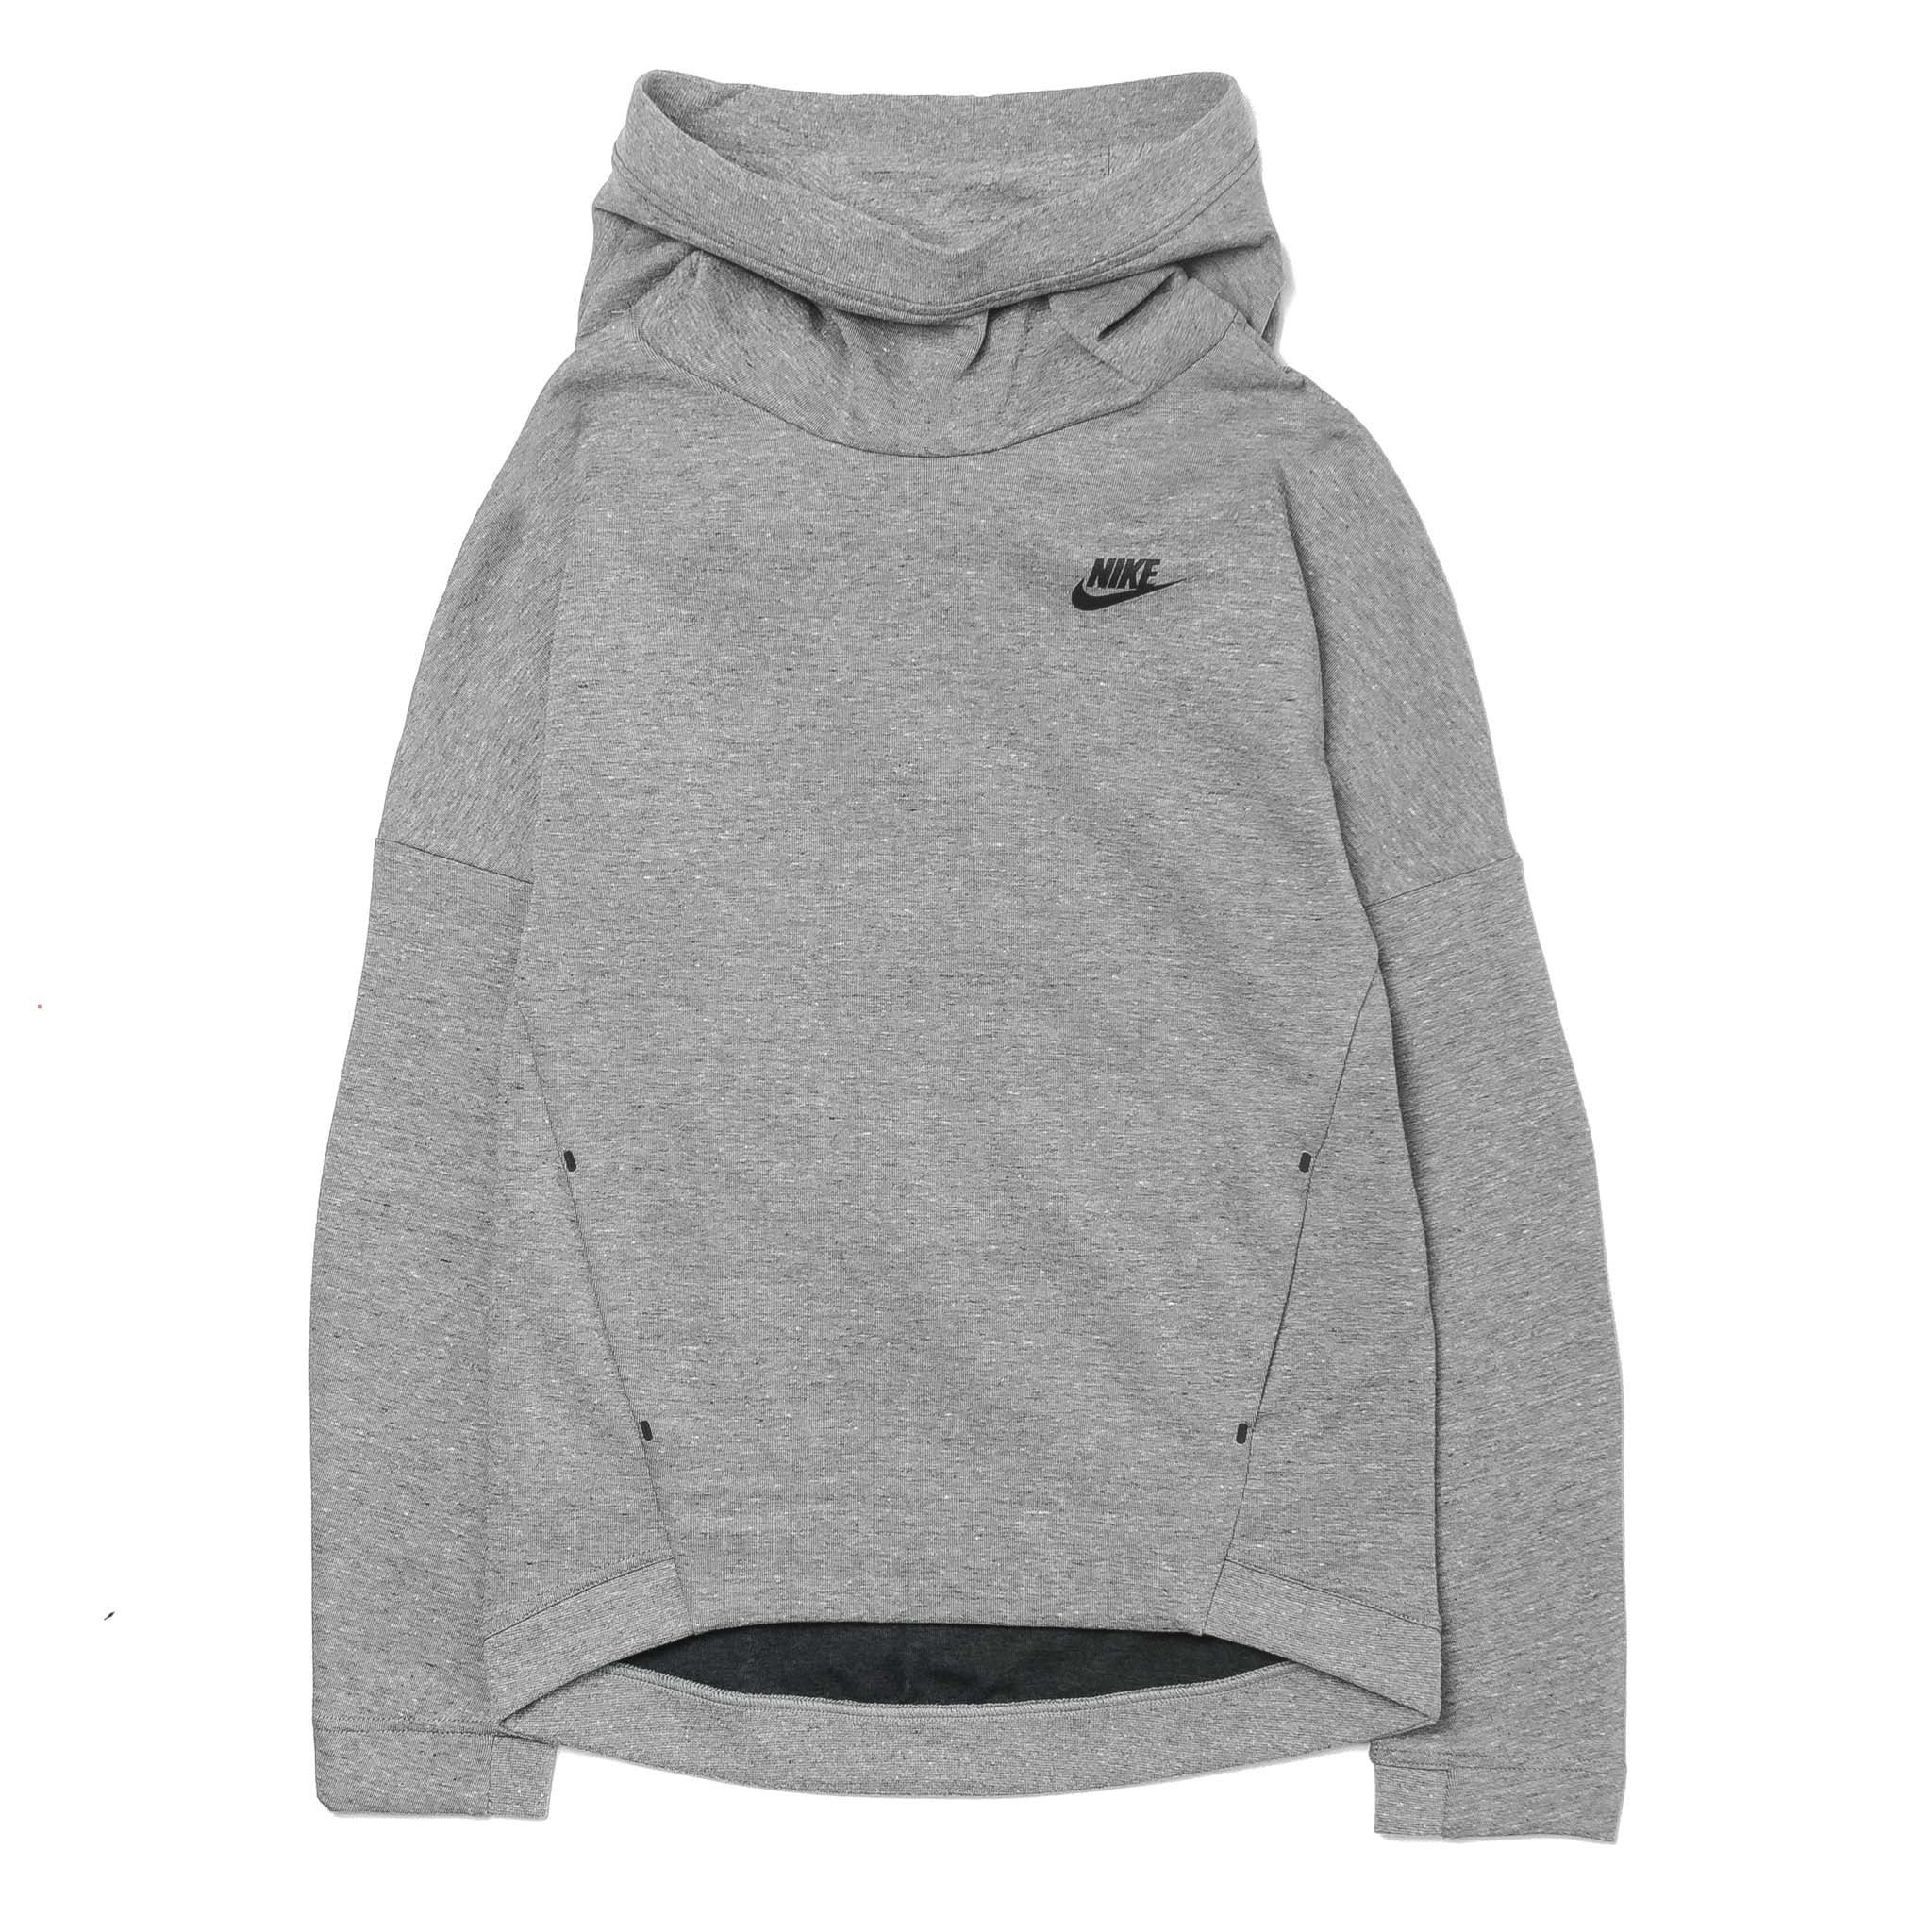 Wmns Tech Fleece Funnel Hoodie 844389-091 Grey